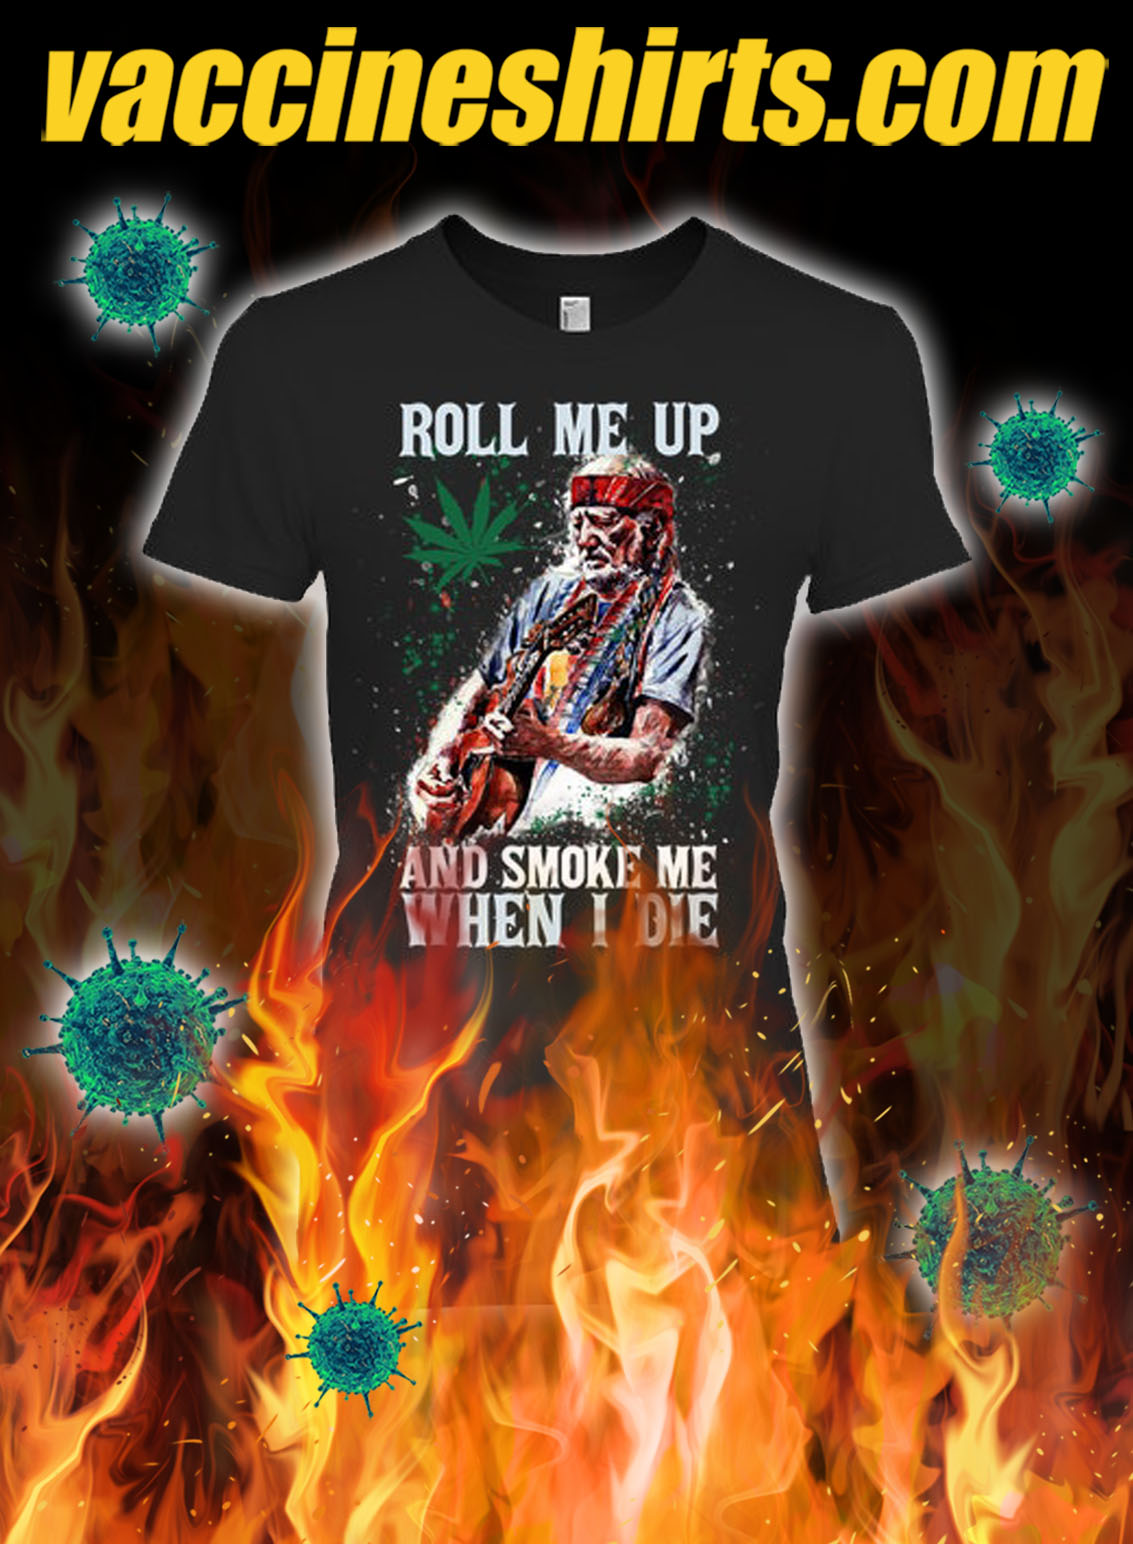 Rool me up and smoke me when i die lady shirt